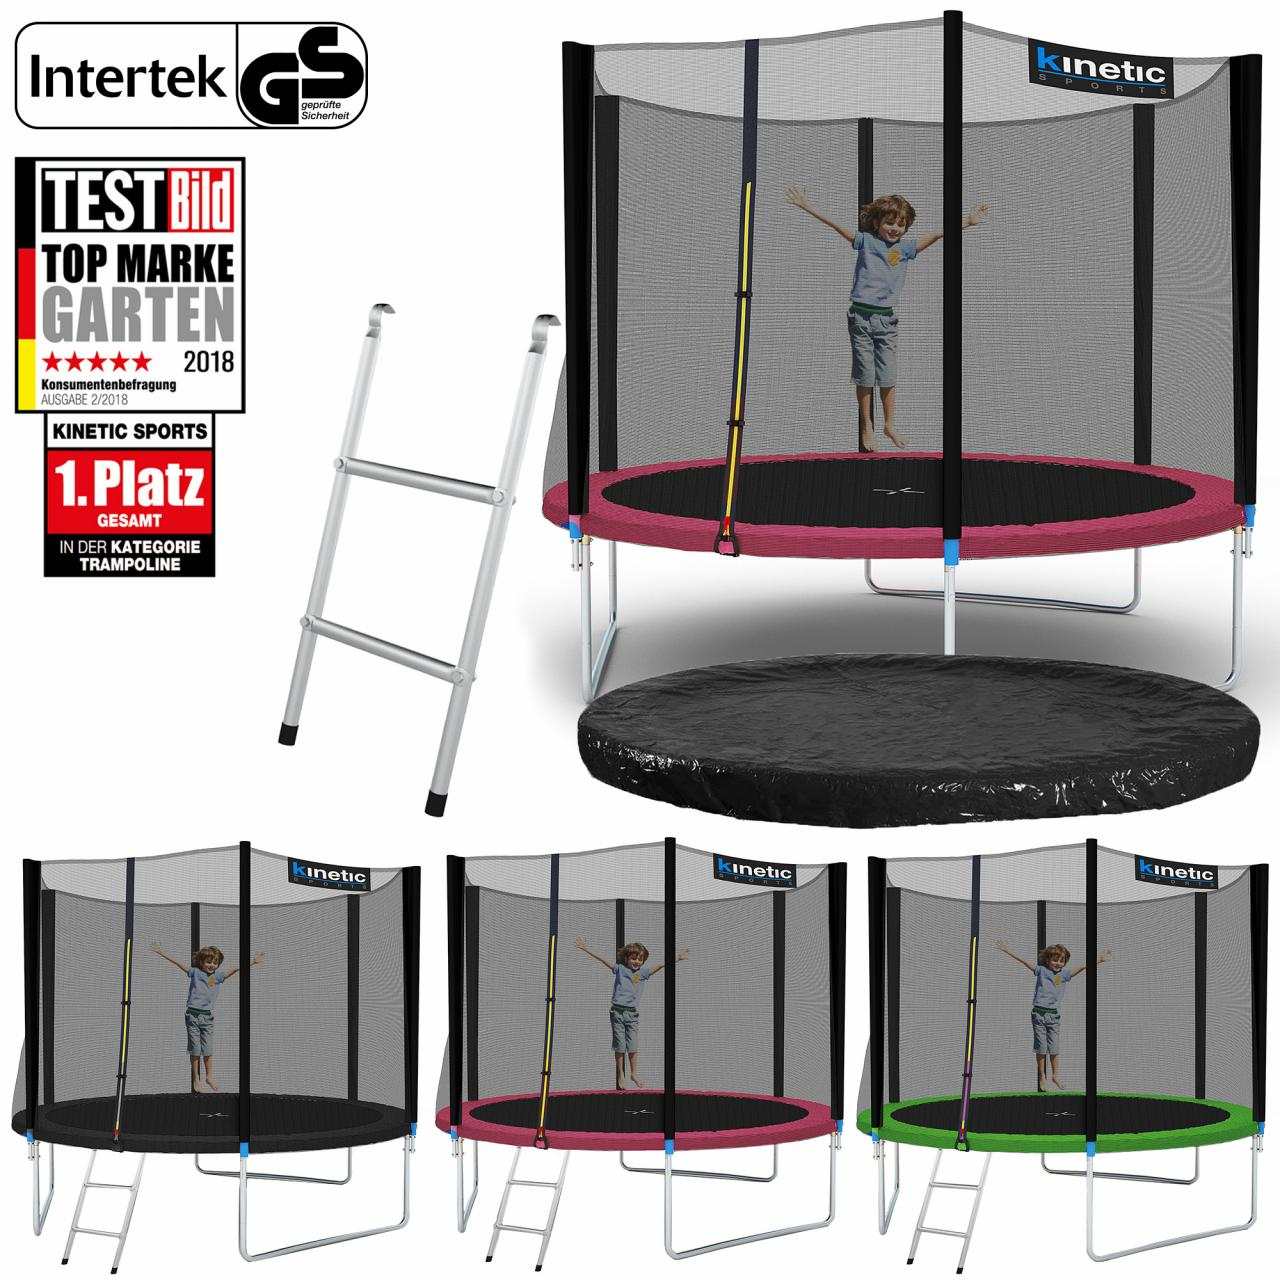 kinder trampolin indoor outdoor garten 140cm inkl sicherheitsnetz in blau ebay. Black Bedroom Furniture Sets. Home Design Ideas